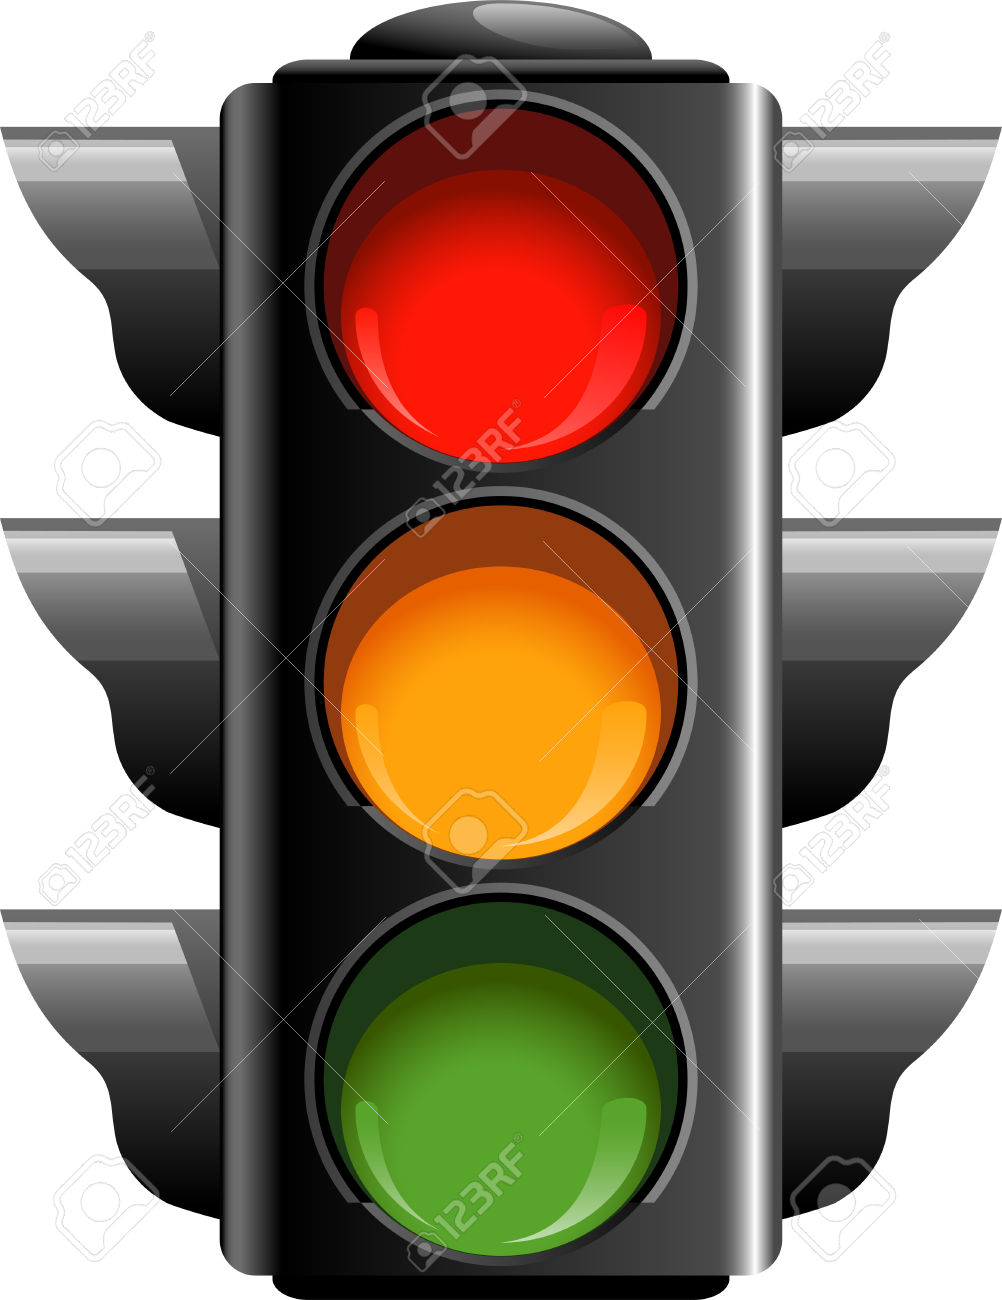 1002x1300 Pictures Of Stop Lights Collection